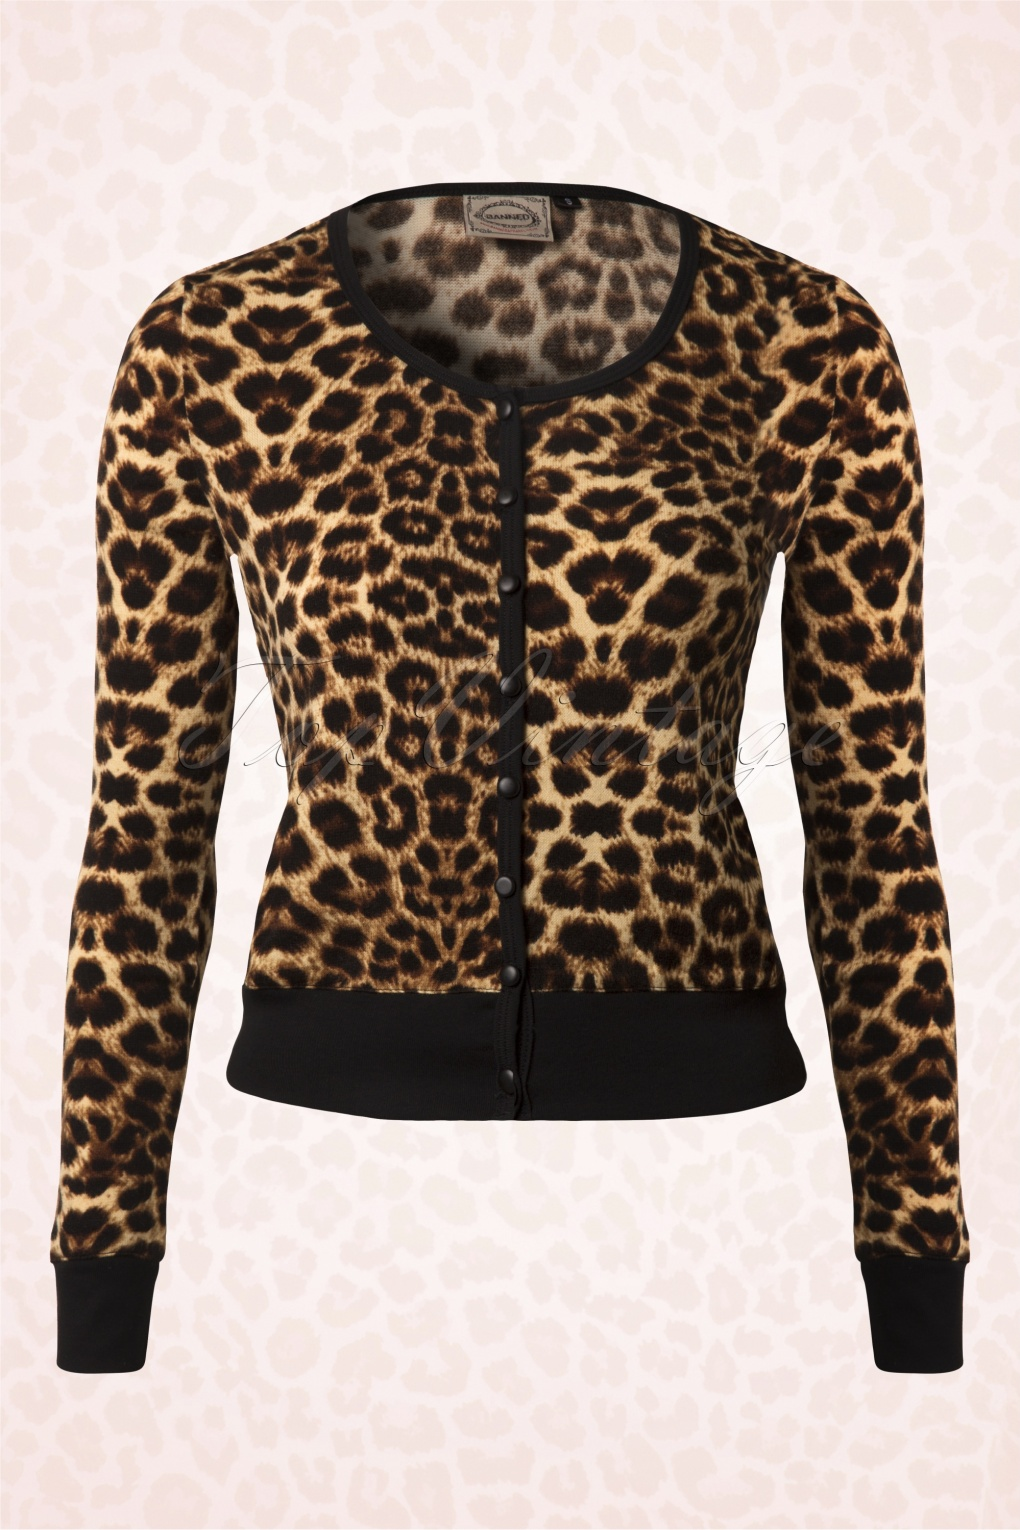 Trendy Print Makes Item Stand Out. MCCKLE Women's Long Sleeve Leopard Print Knitted Shop Best Sellers · Deals of the Day · Fast Shipping · Read Ratings & Reviews.